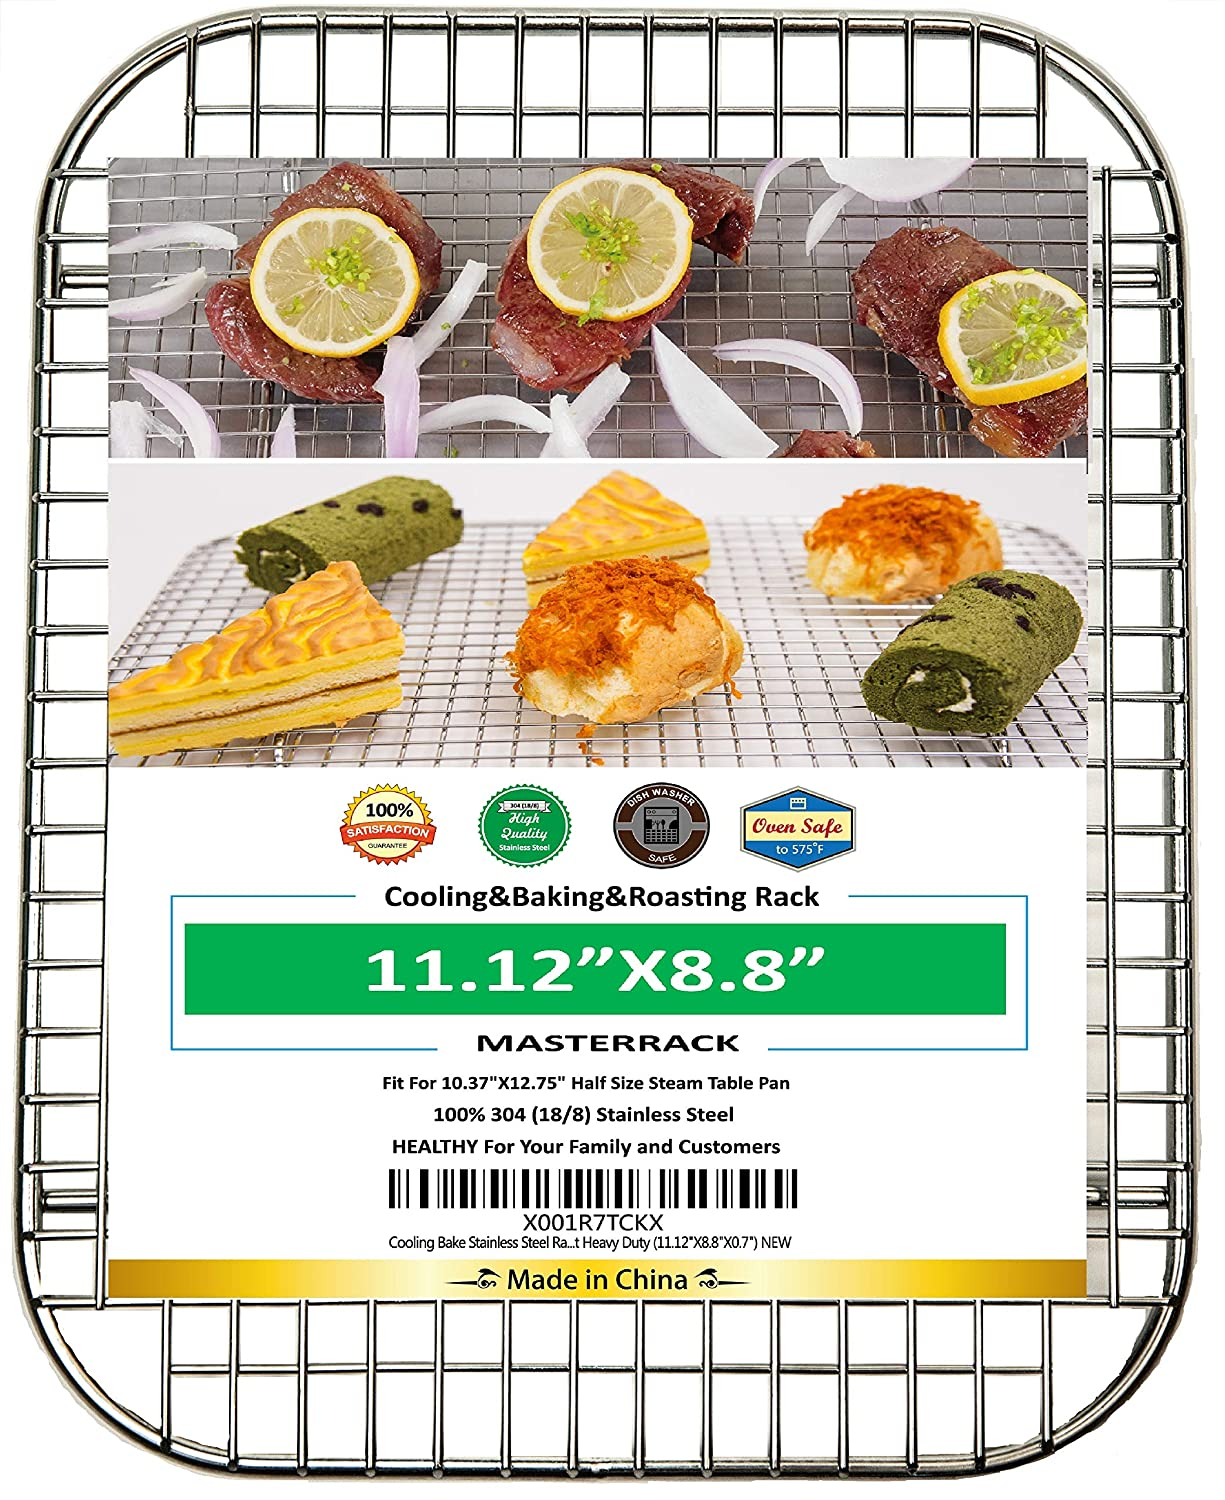 100% 304 Stainless Steel Cooling Rack and Wire Grate For Half Size Steam Pan,Real Heavy Duty 1.05LB for Cooking, Roasting,Drying,Commercial Quality,Healthy Material Compliance with FDA by SGS.